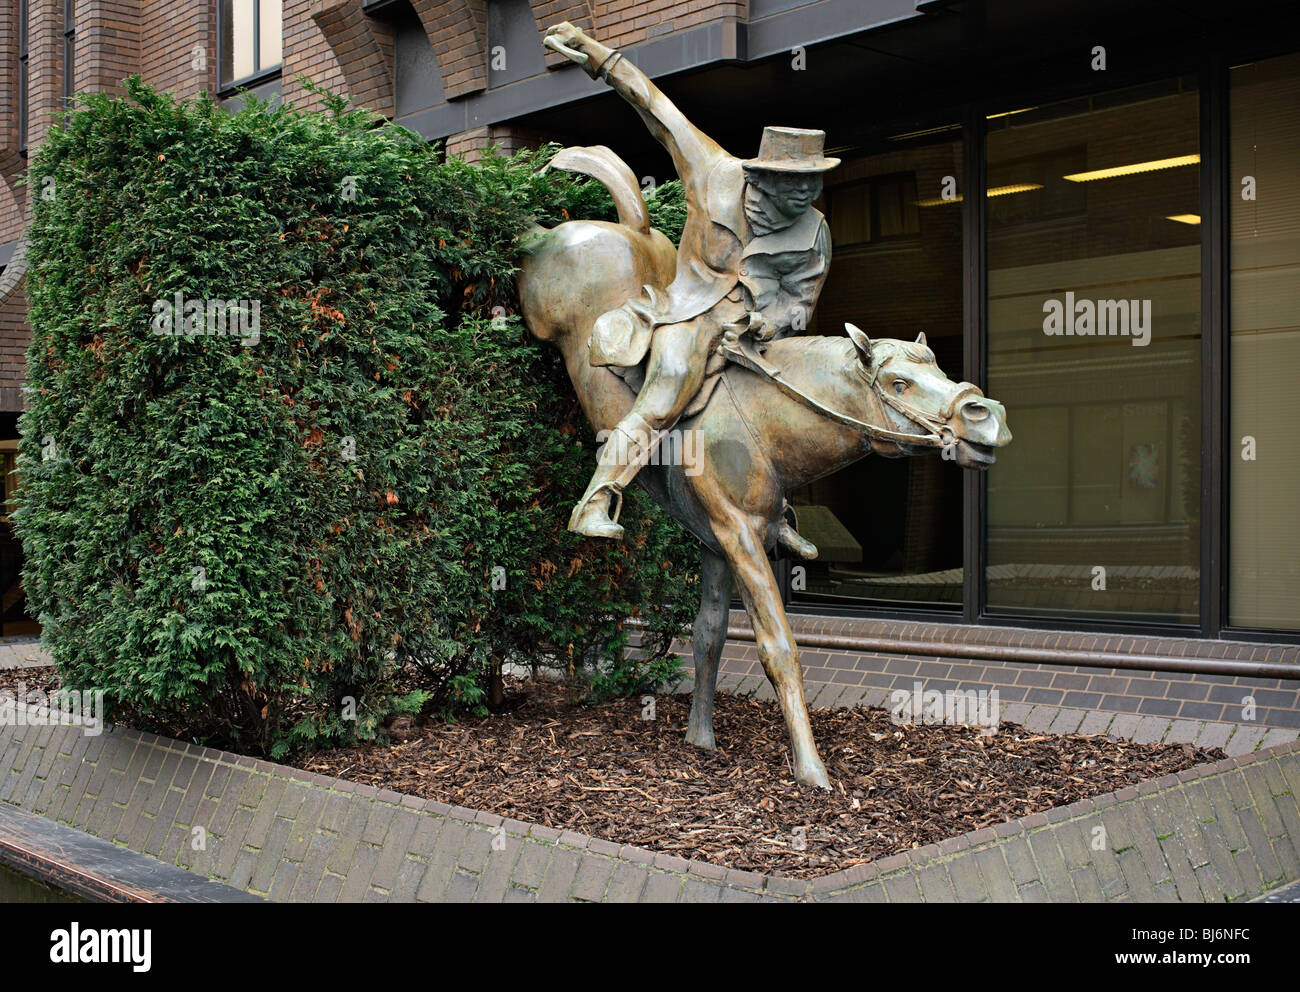 Statue of a Jockey riding a horse over a hedge. - Stock Image